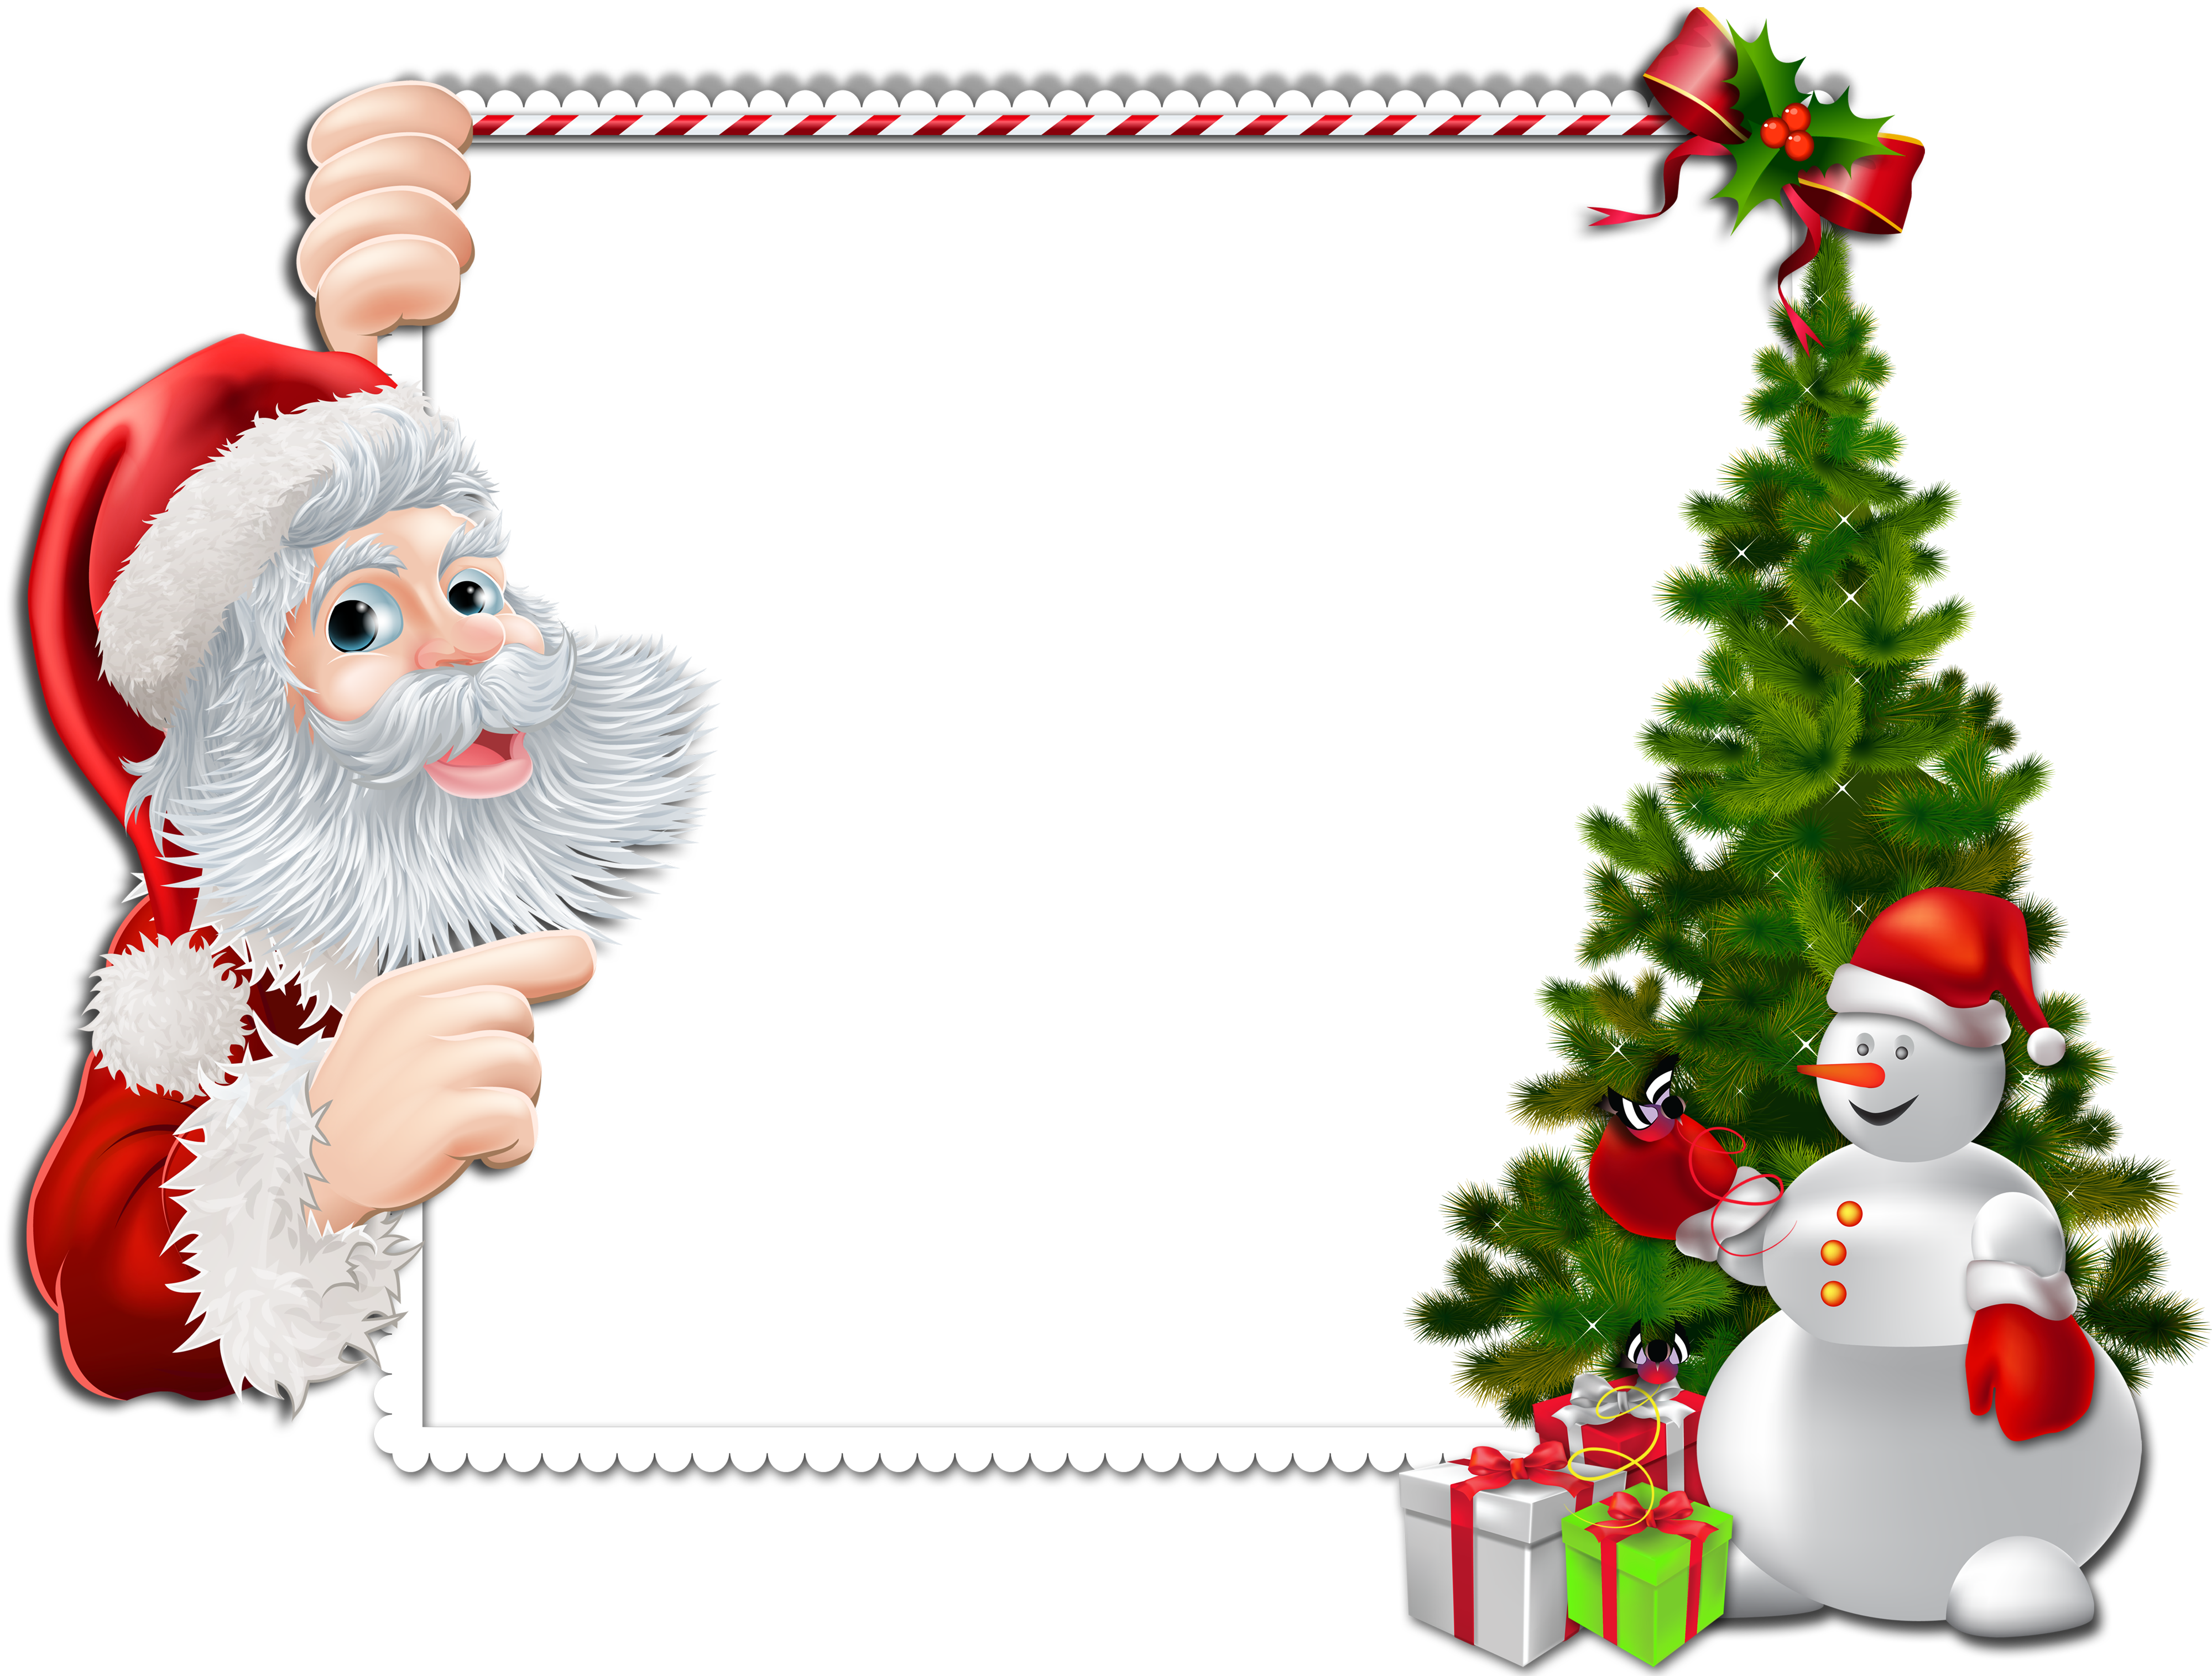 Frame clipart xmas. Large christmas png with